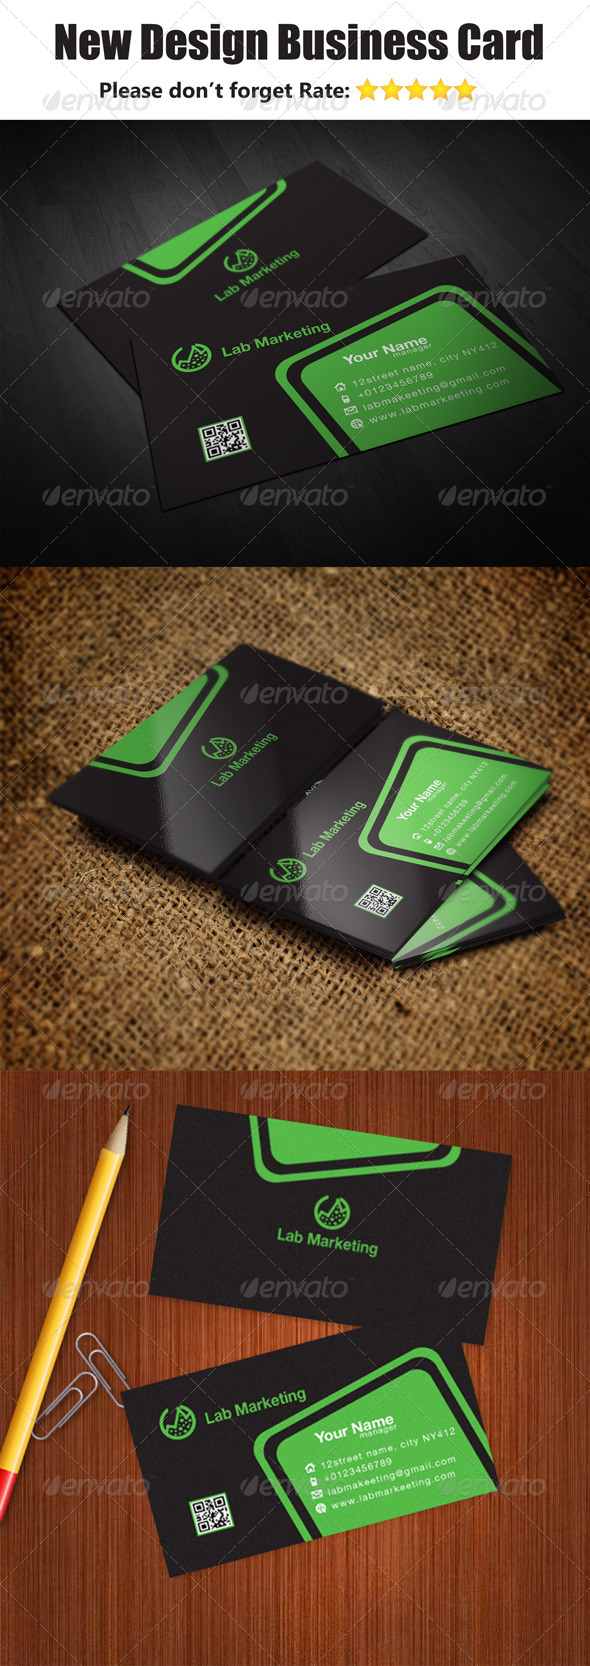 GraphicRiver New Design Business Card 5808689